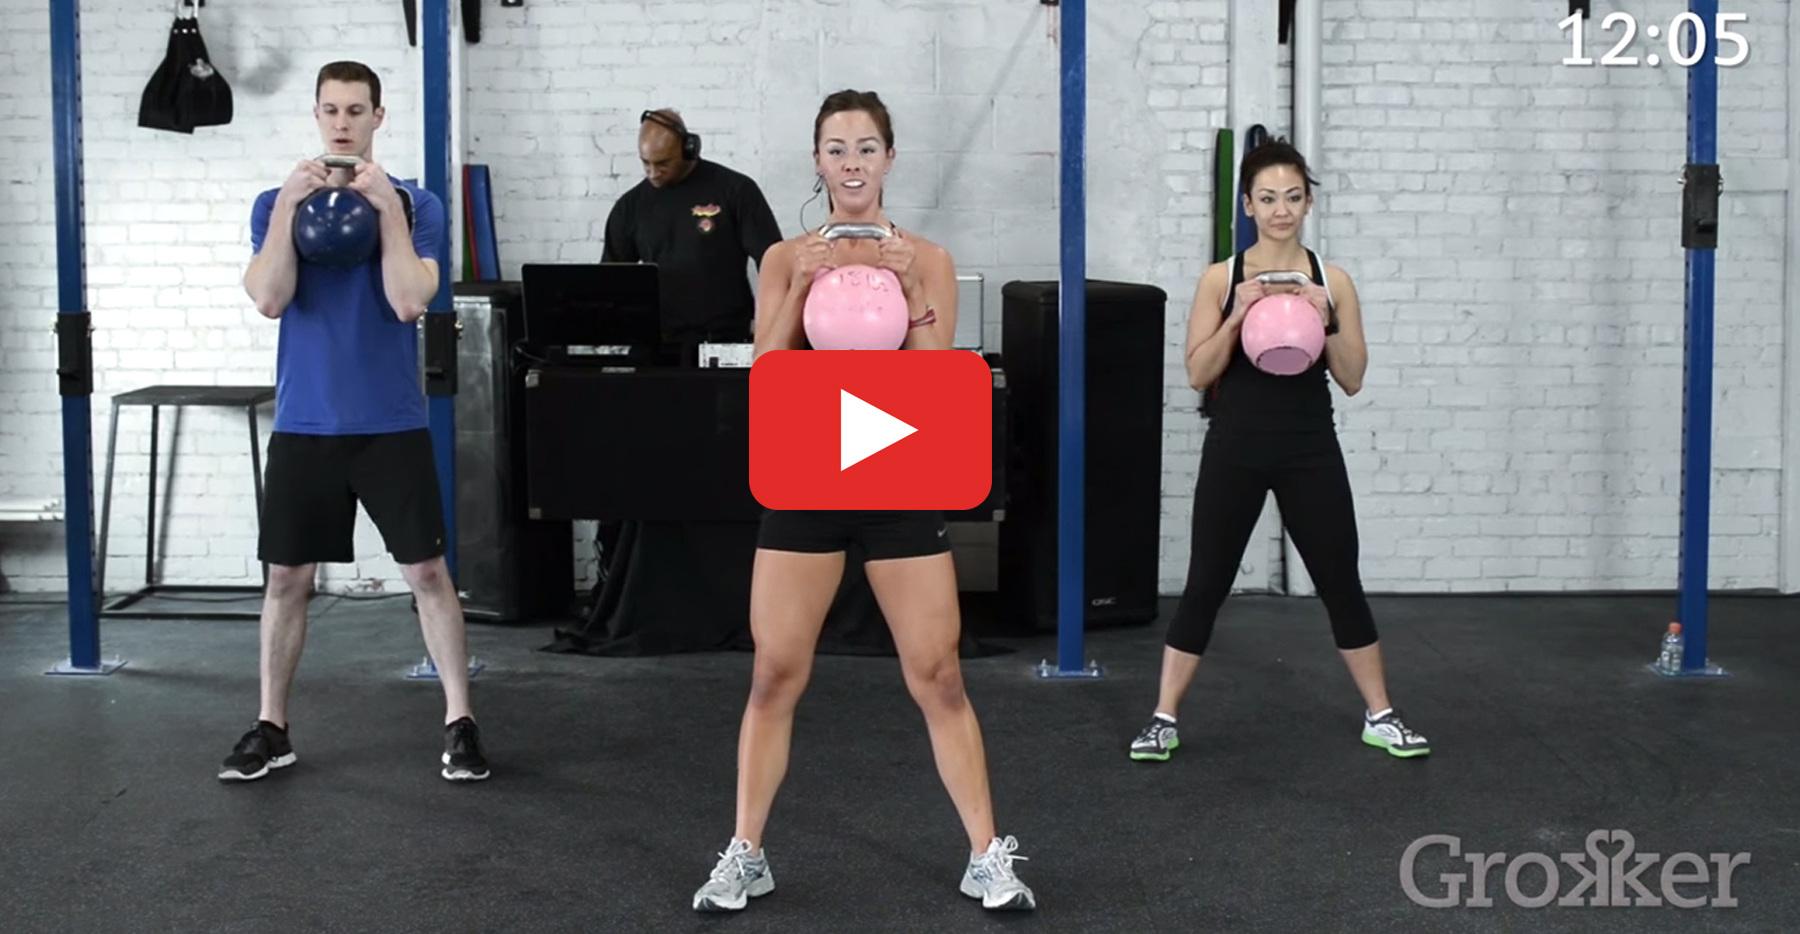 Circuito Kettlebell : Kettlebell workout the minute total body kettlebell workout